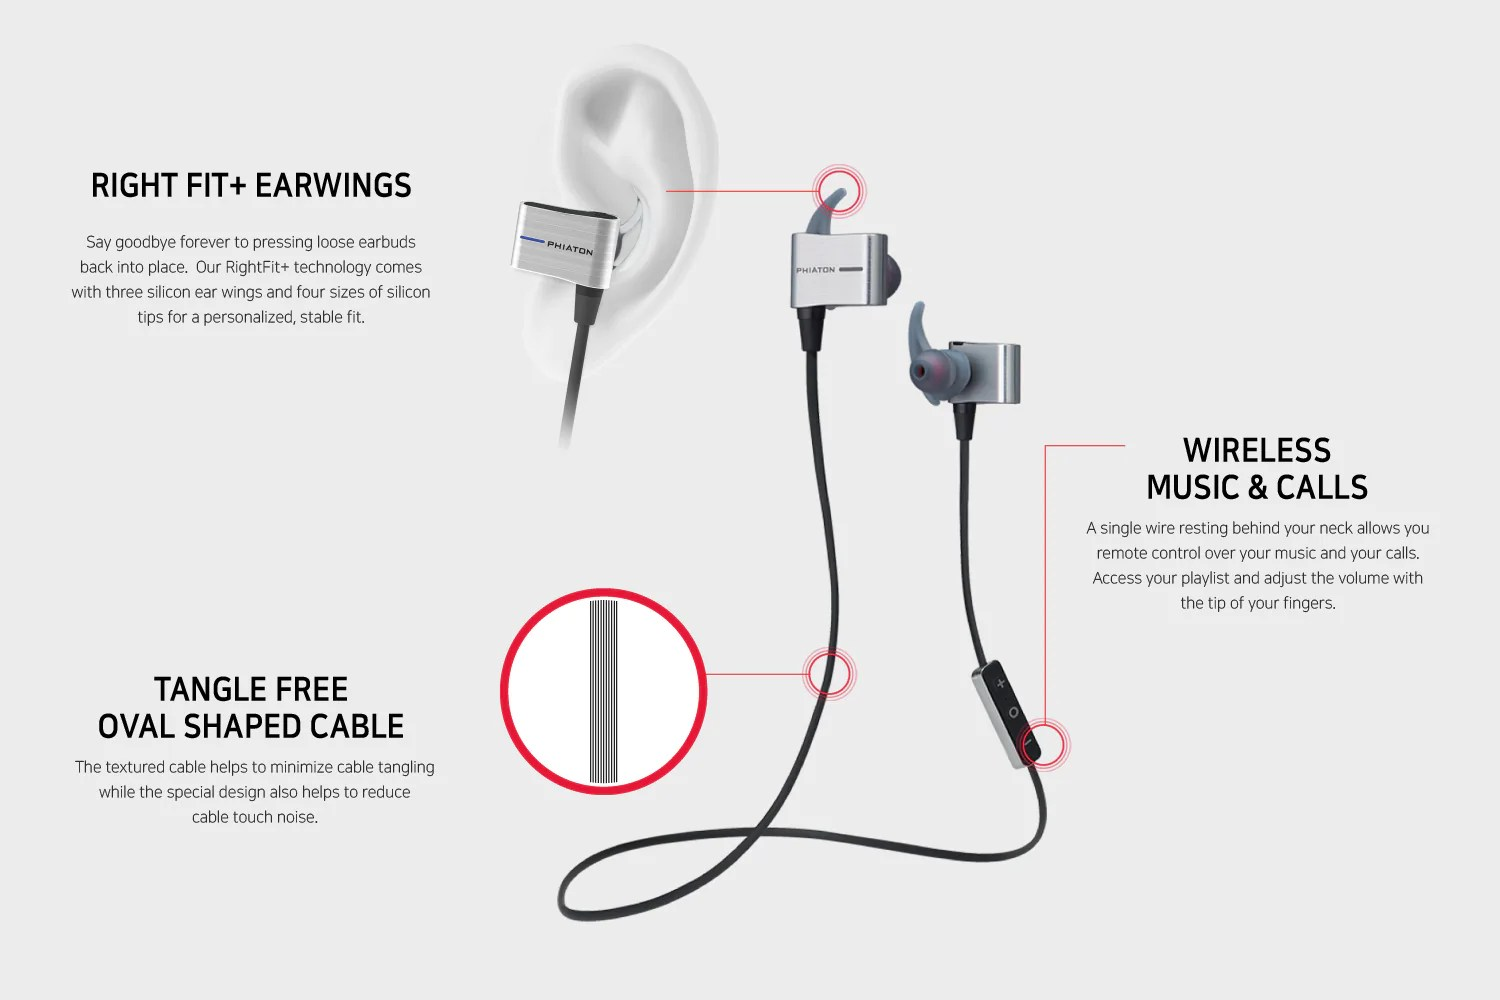 medium resolution of  water resistant bluetooth earbuds bt 110 earphones phiaton on jabra bluetooth wiring diagram